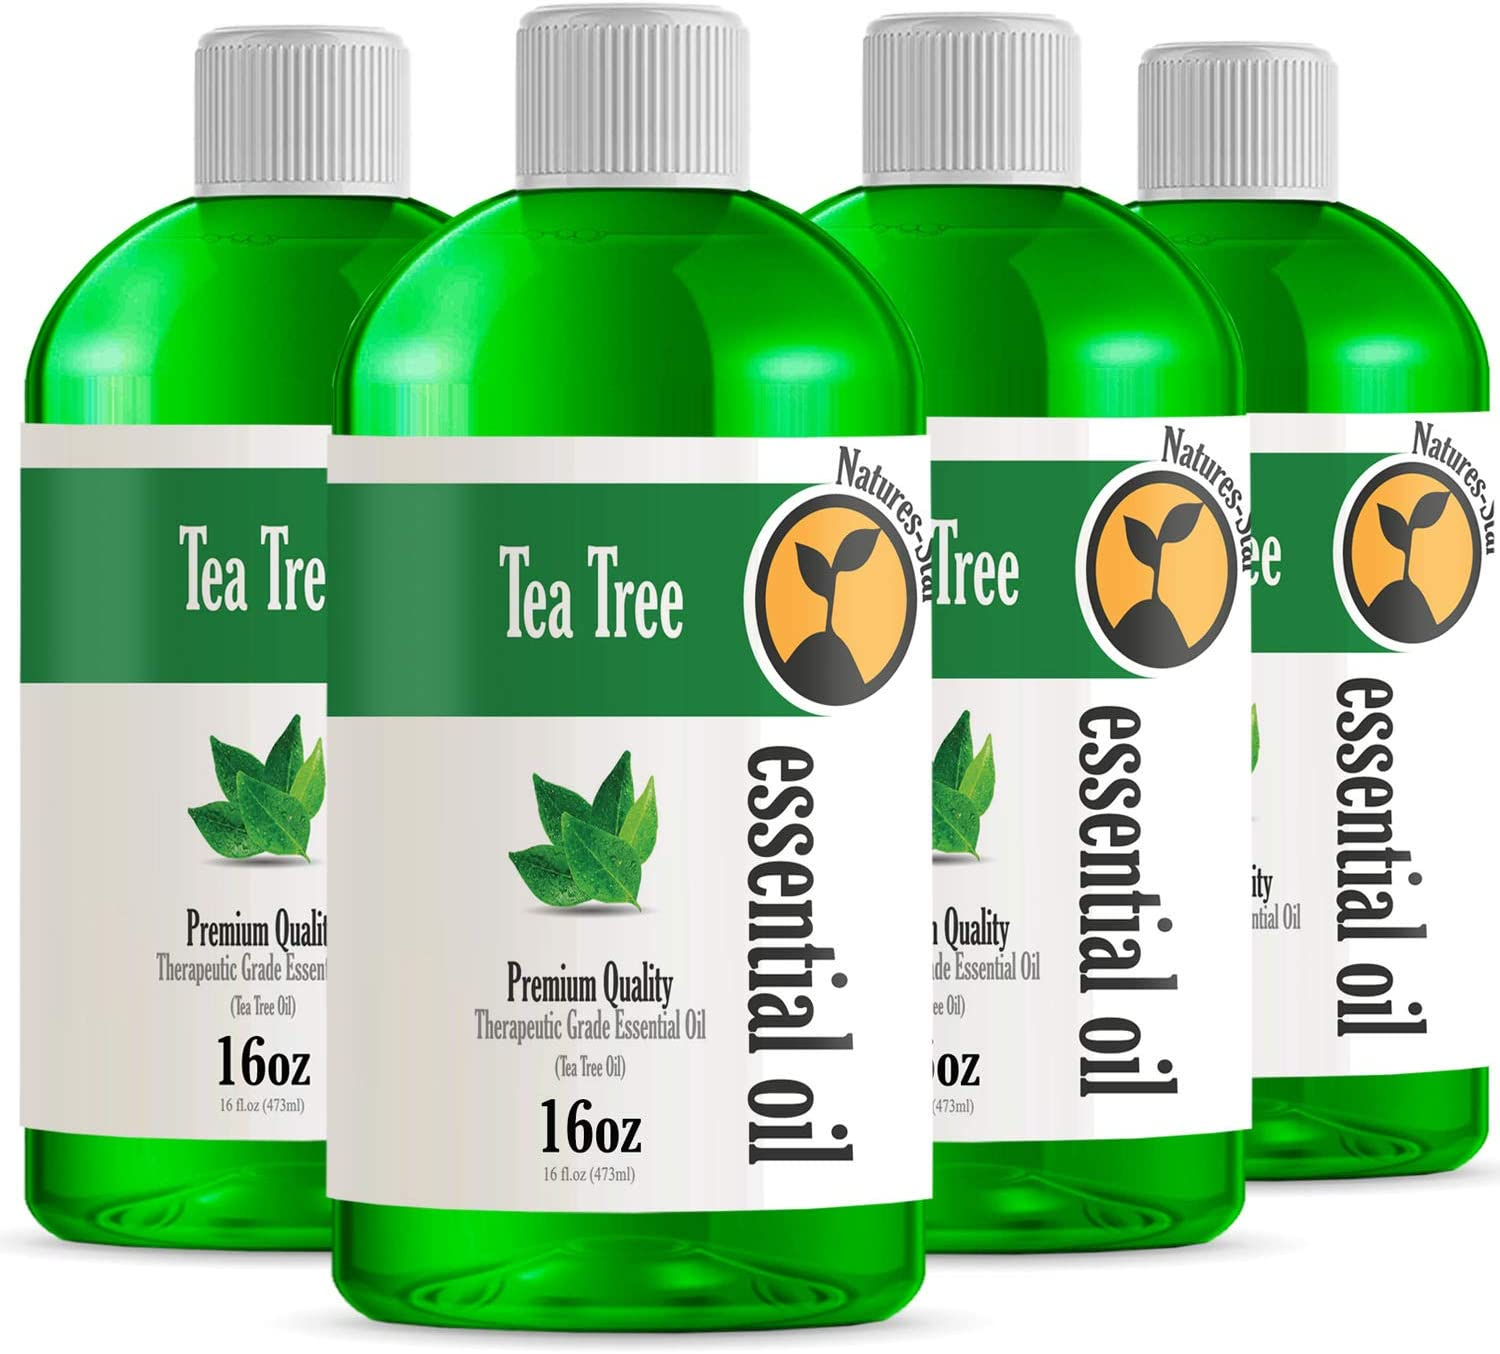 4 Pack - Bulk Size Tea Tree Essential Oil (64OZ Total) - Therapeutic Grade Essential Oil - 4 Pack of 16oz Bottles